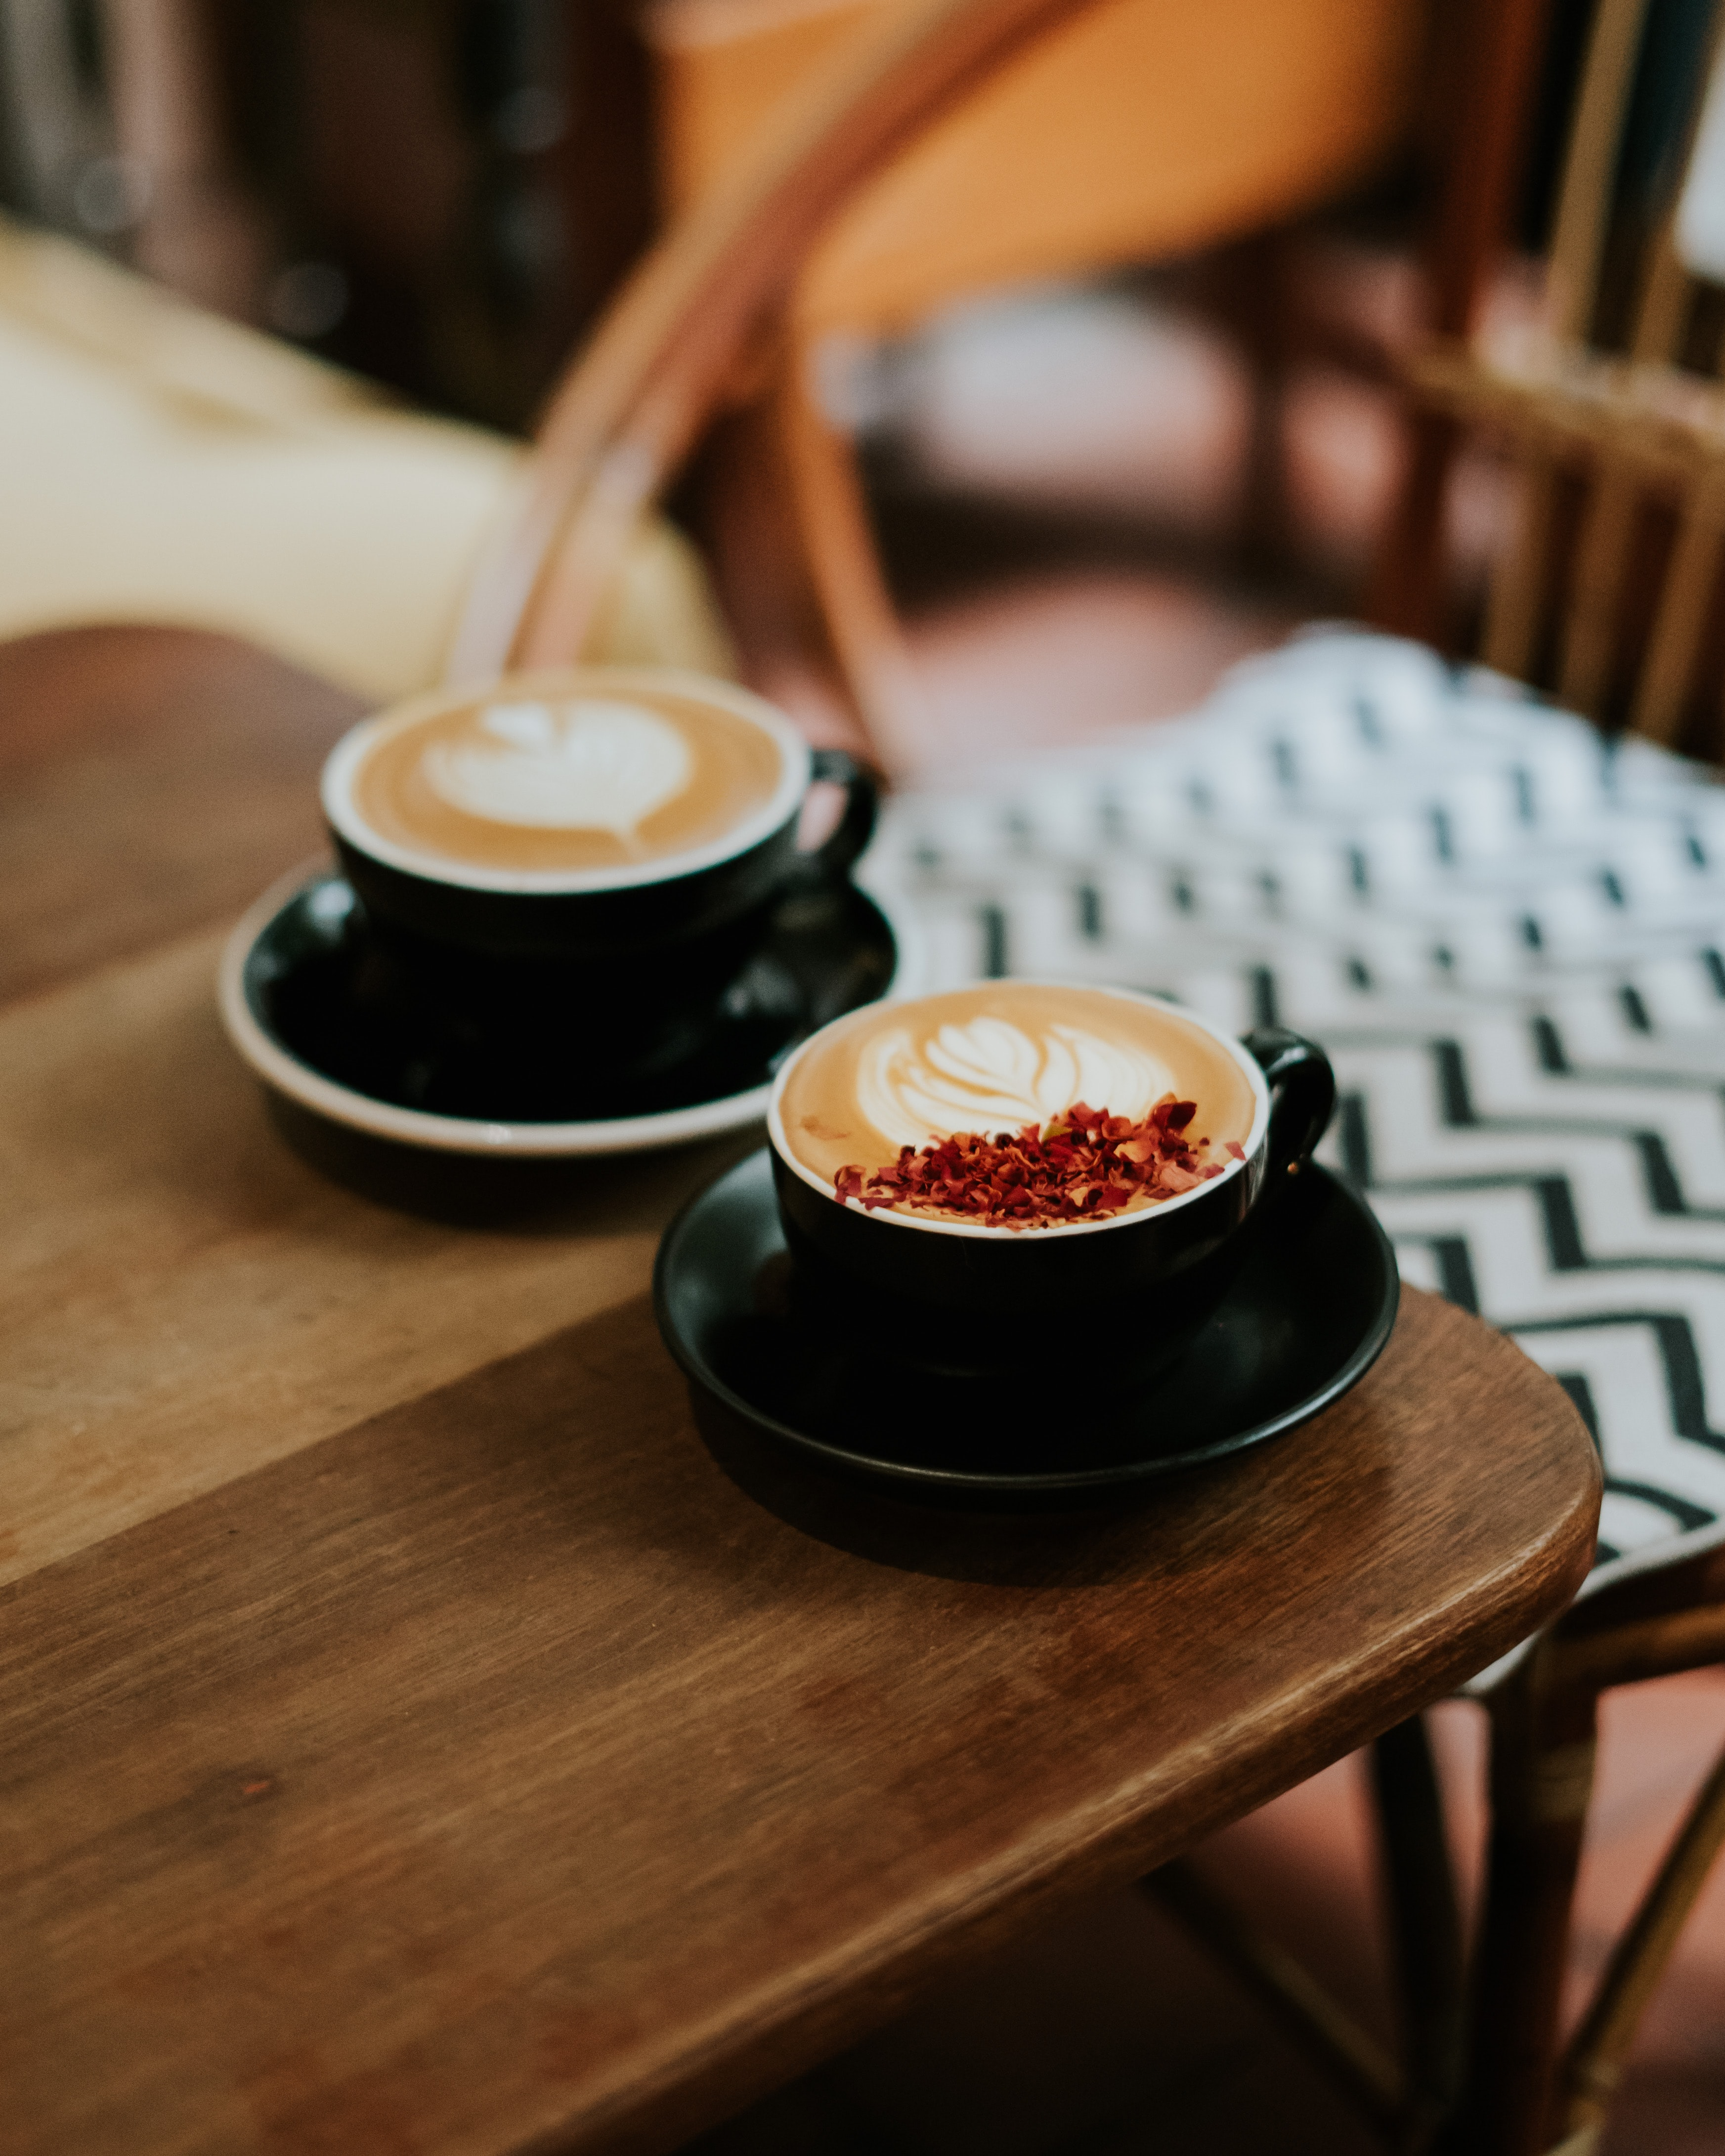 107349 download wallpaper Food, Cups, Wood, Wooden, Table, Cappuccino screensavers and pictures for free